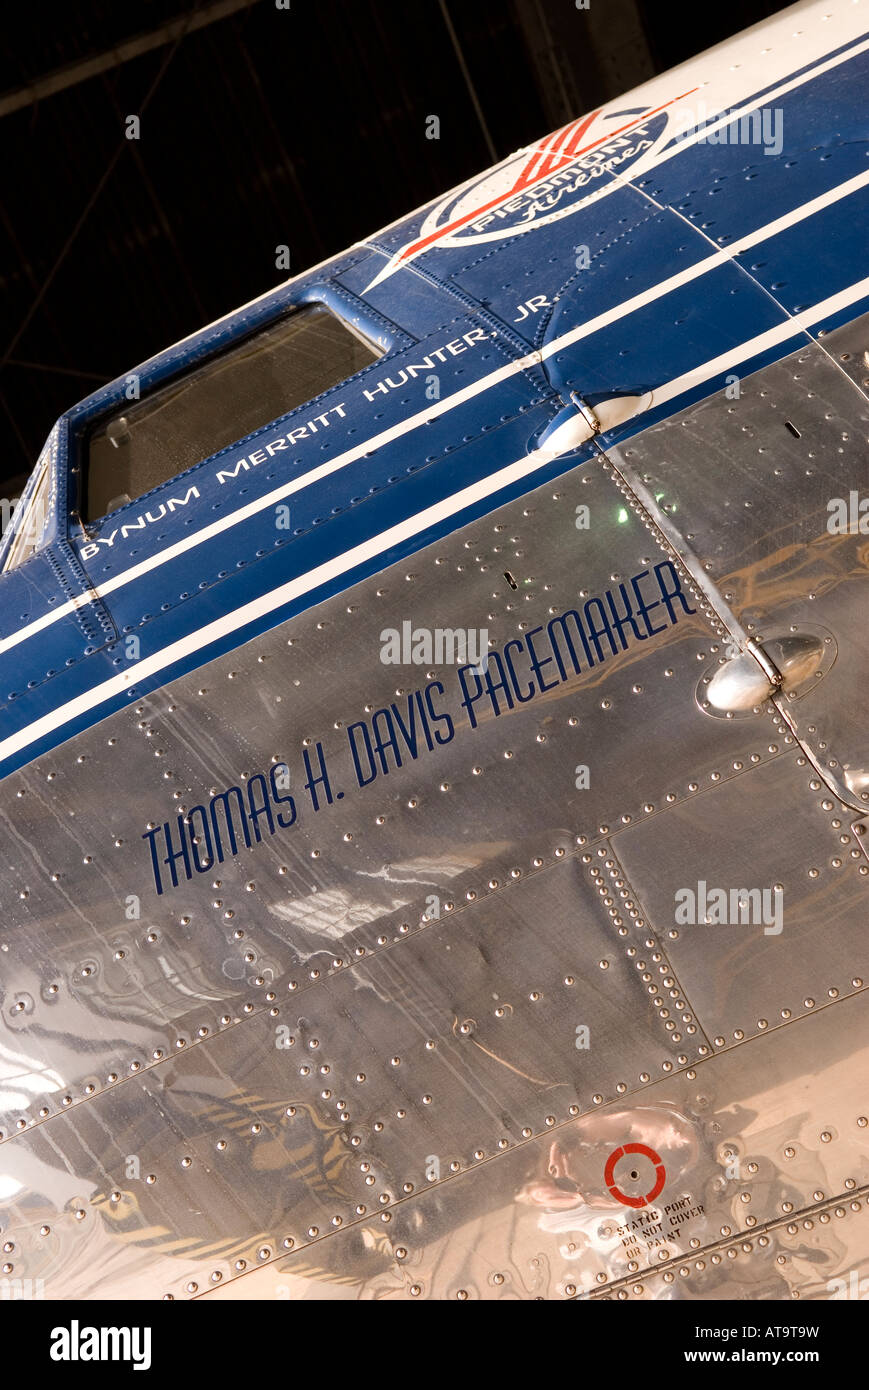 DC-3 Piedmont Airlines Aircraft Parked in Hanger at Carolinas Aviation Museum in Charlotte NC USA - Stock Image